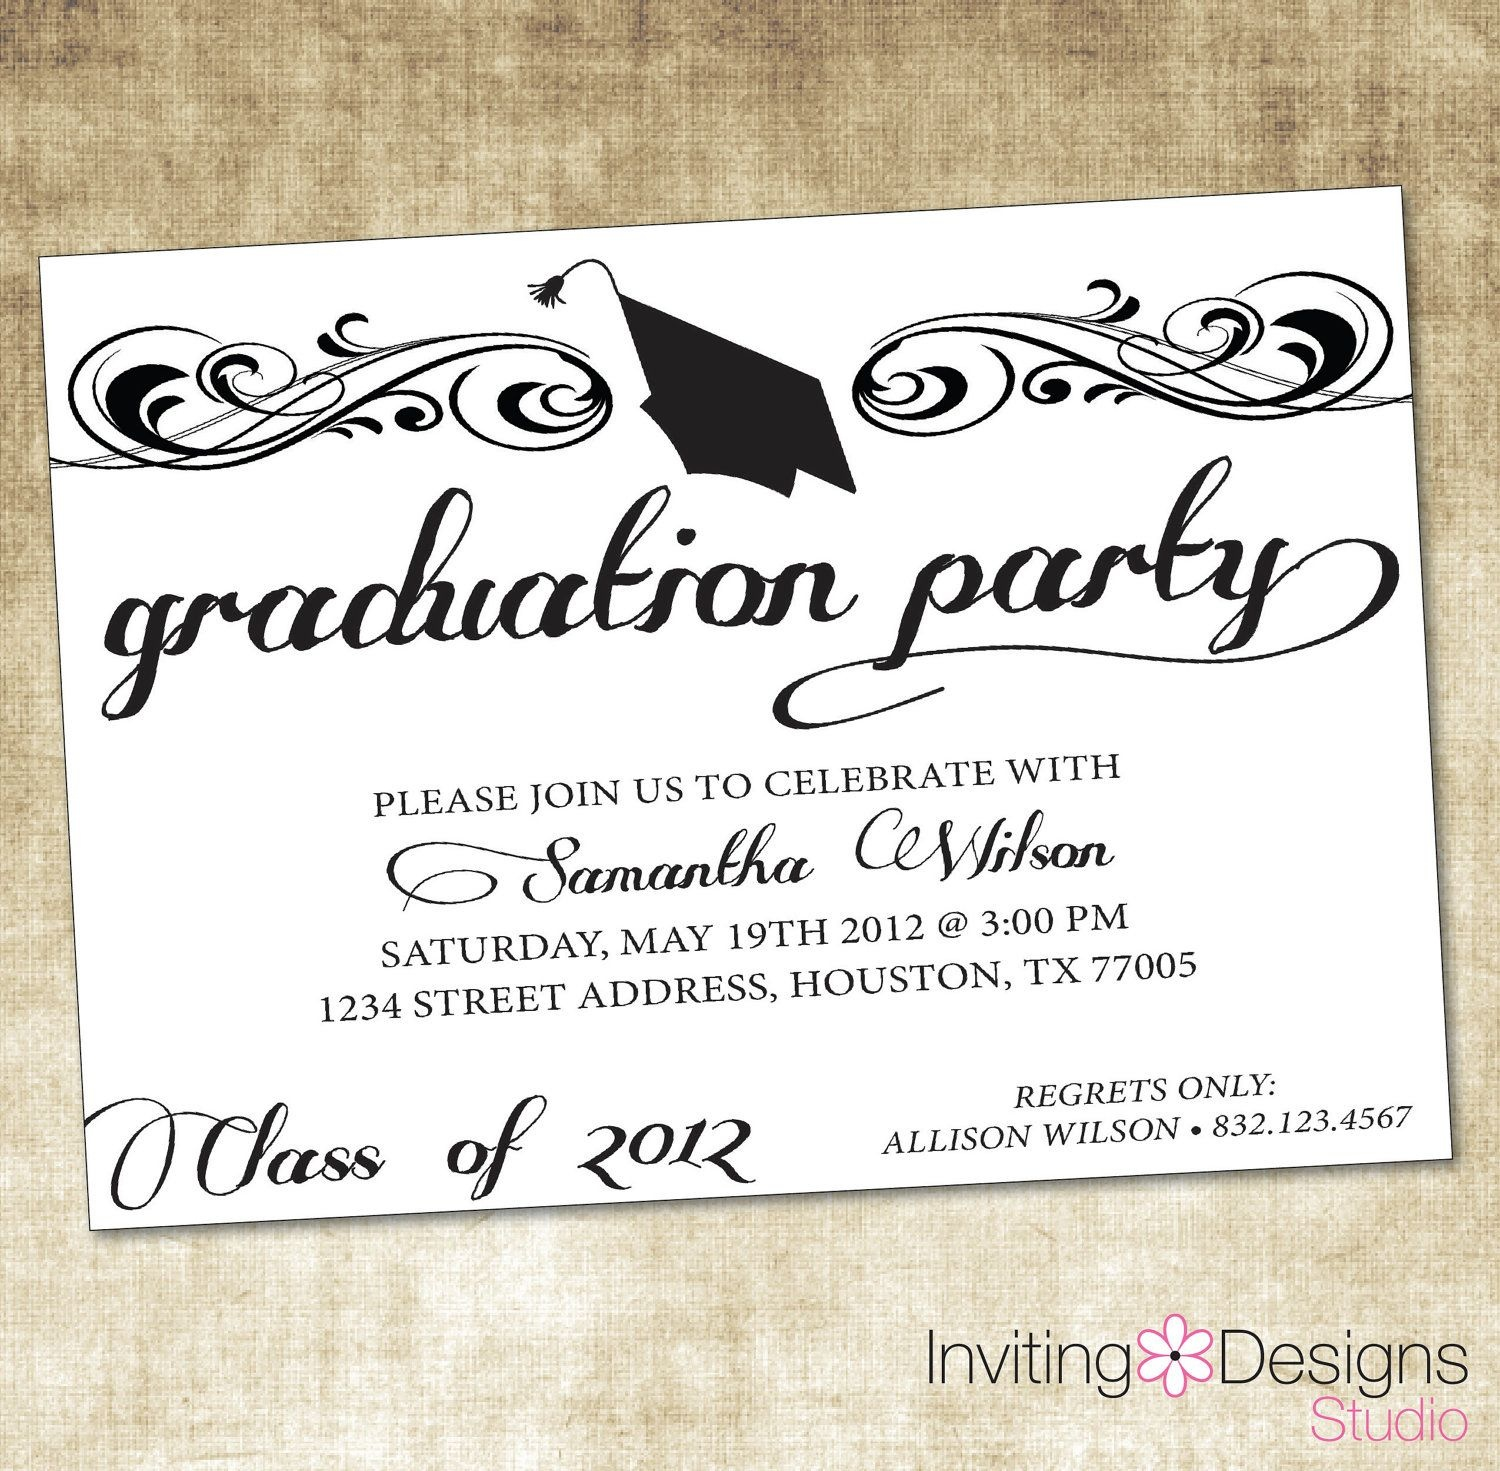 Image Result For Graduation Party Invitation Wording Ideas | Zach - Free Printable Graduation Invitations 2014